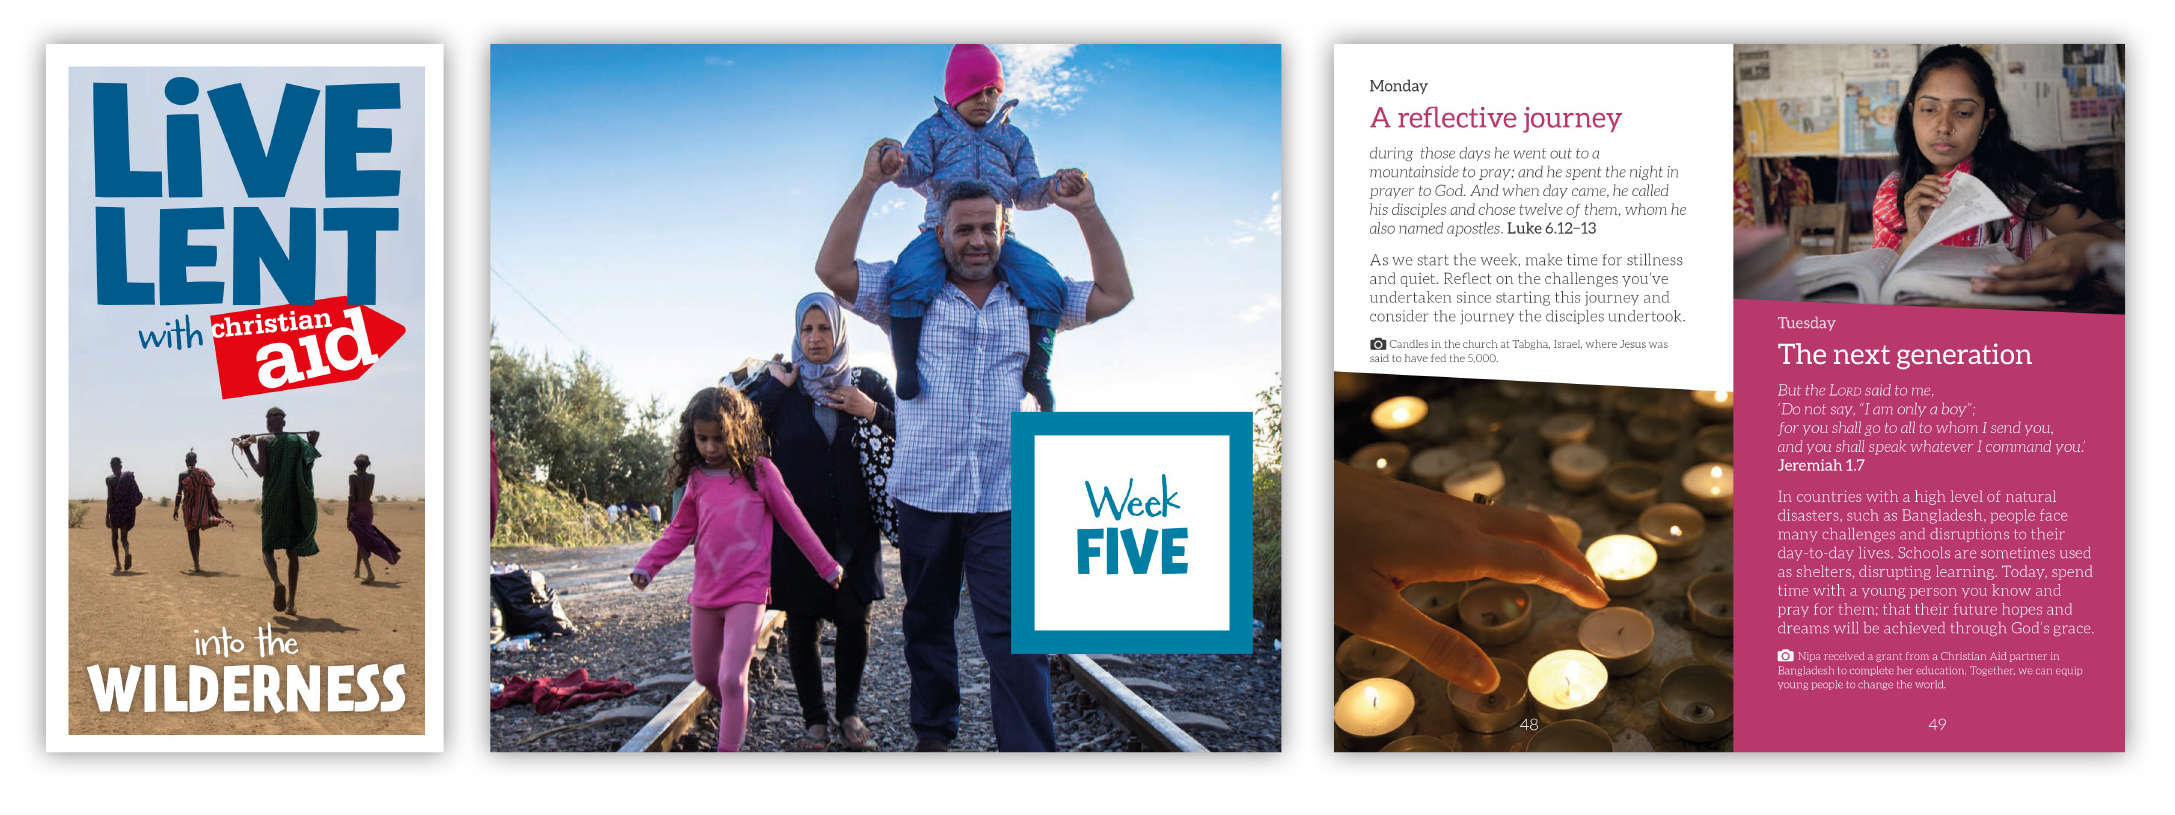 Live Lent with Christian Aid book designs